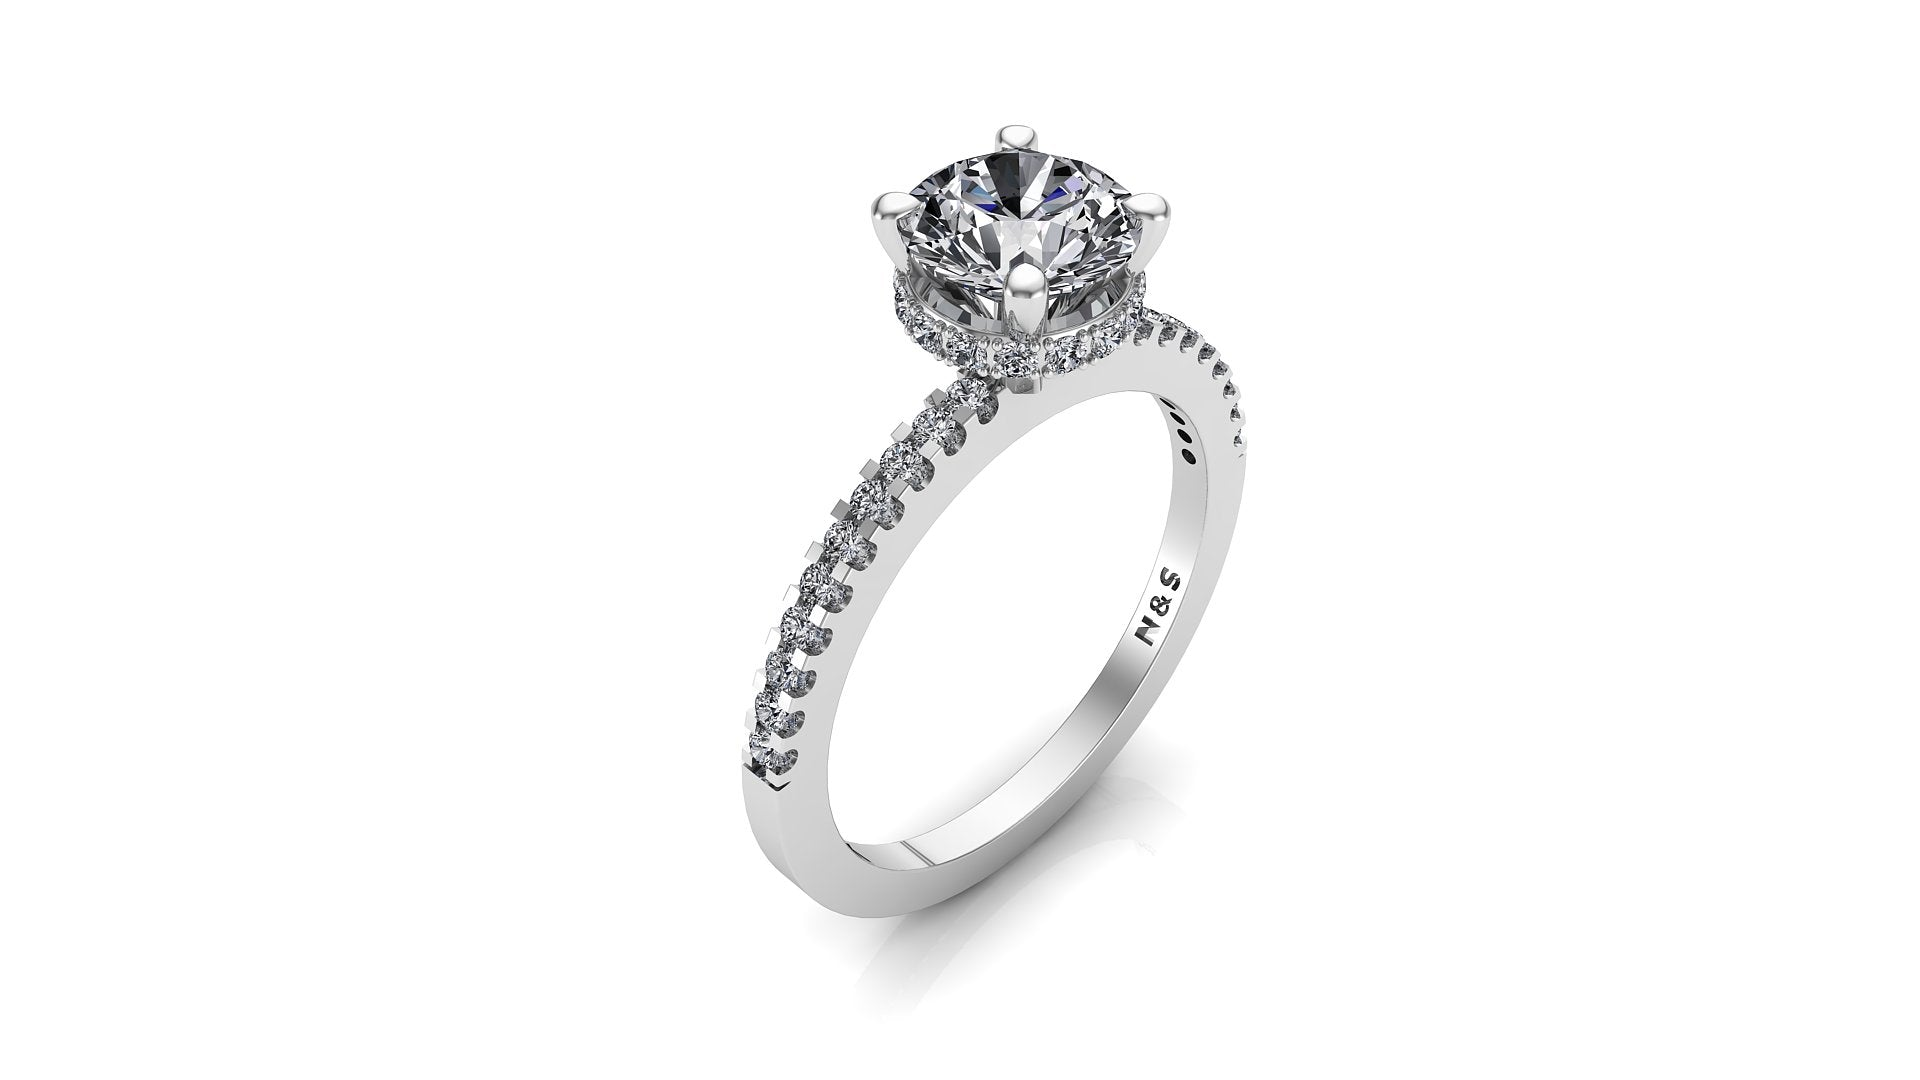 6.5mm (1.00ct) Katie ForeverOne Round Moissanite Diamond Underhalo Engagement Ring 14K Gold MOENG023